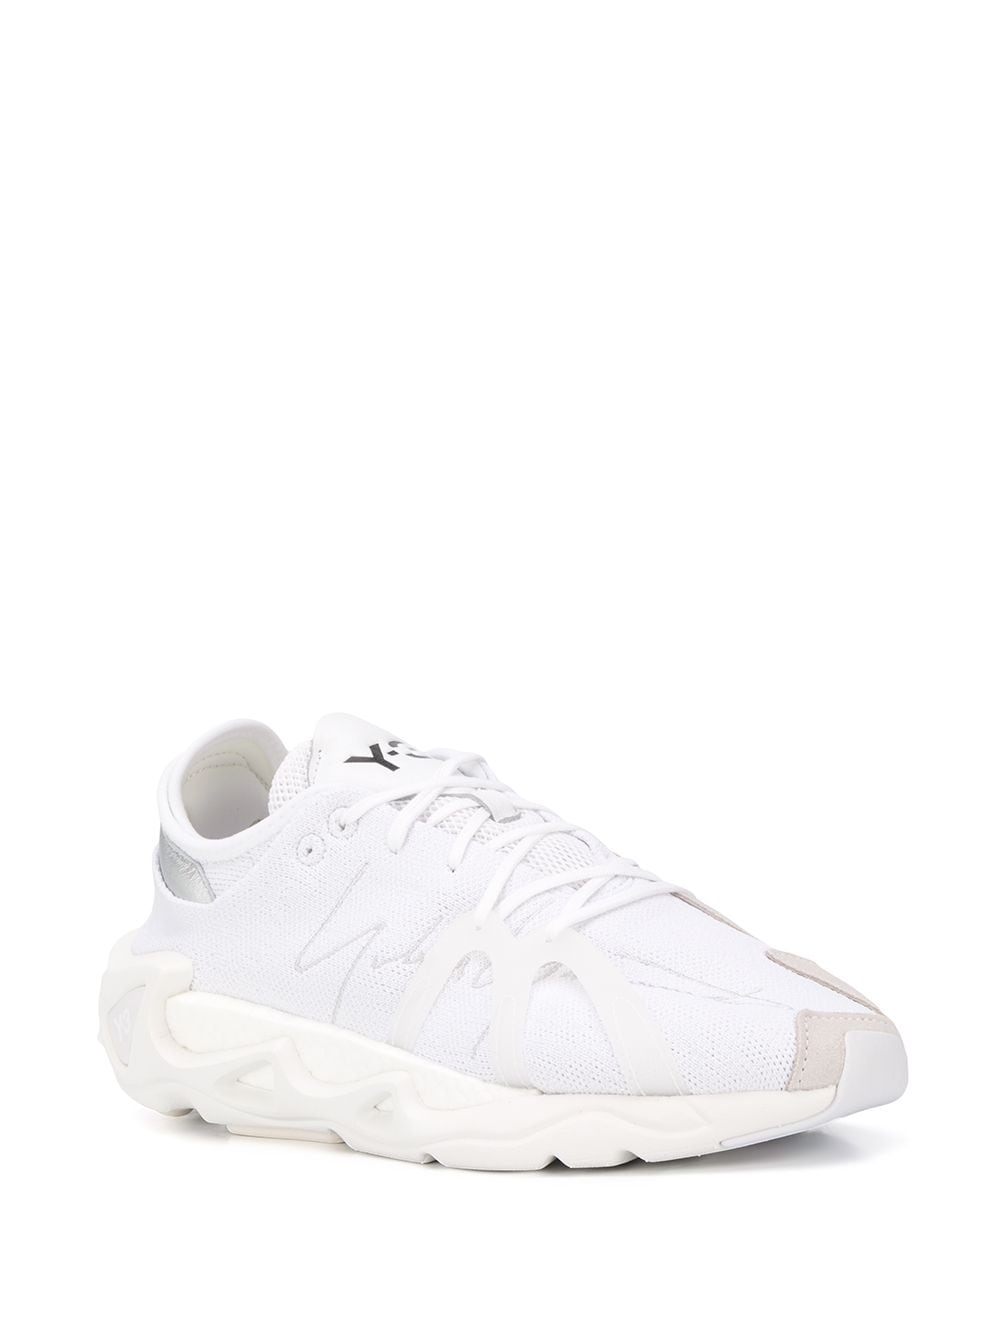 Picture of Adidas Y-3 | Fyw S-97 Low-Top Sneakers